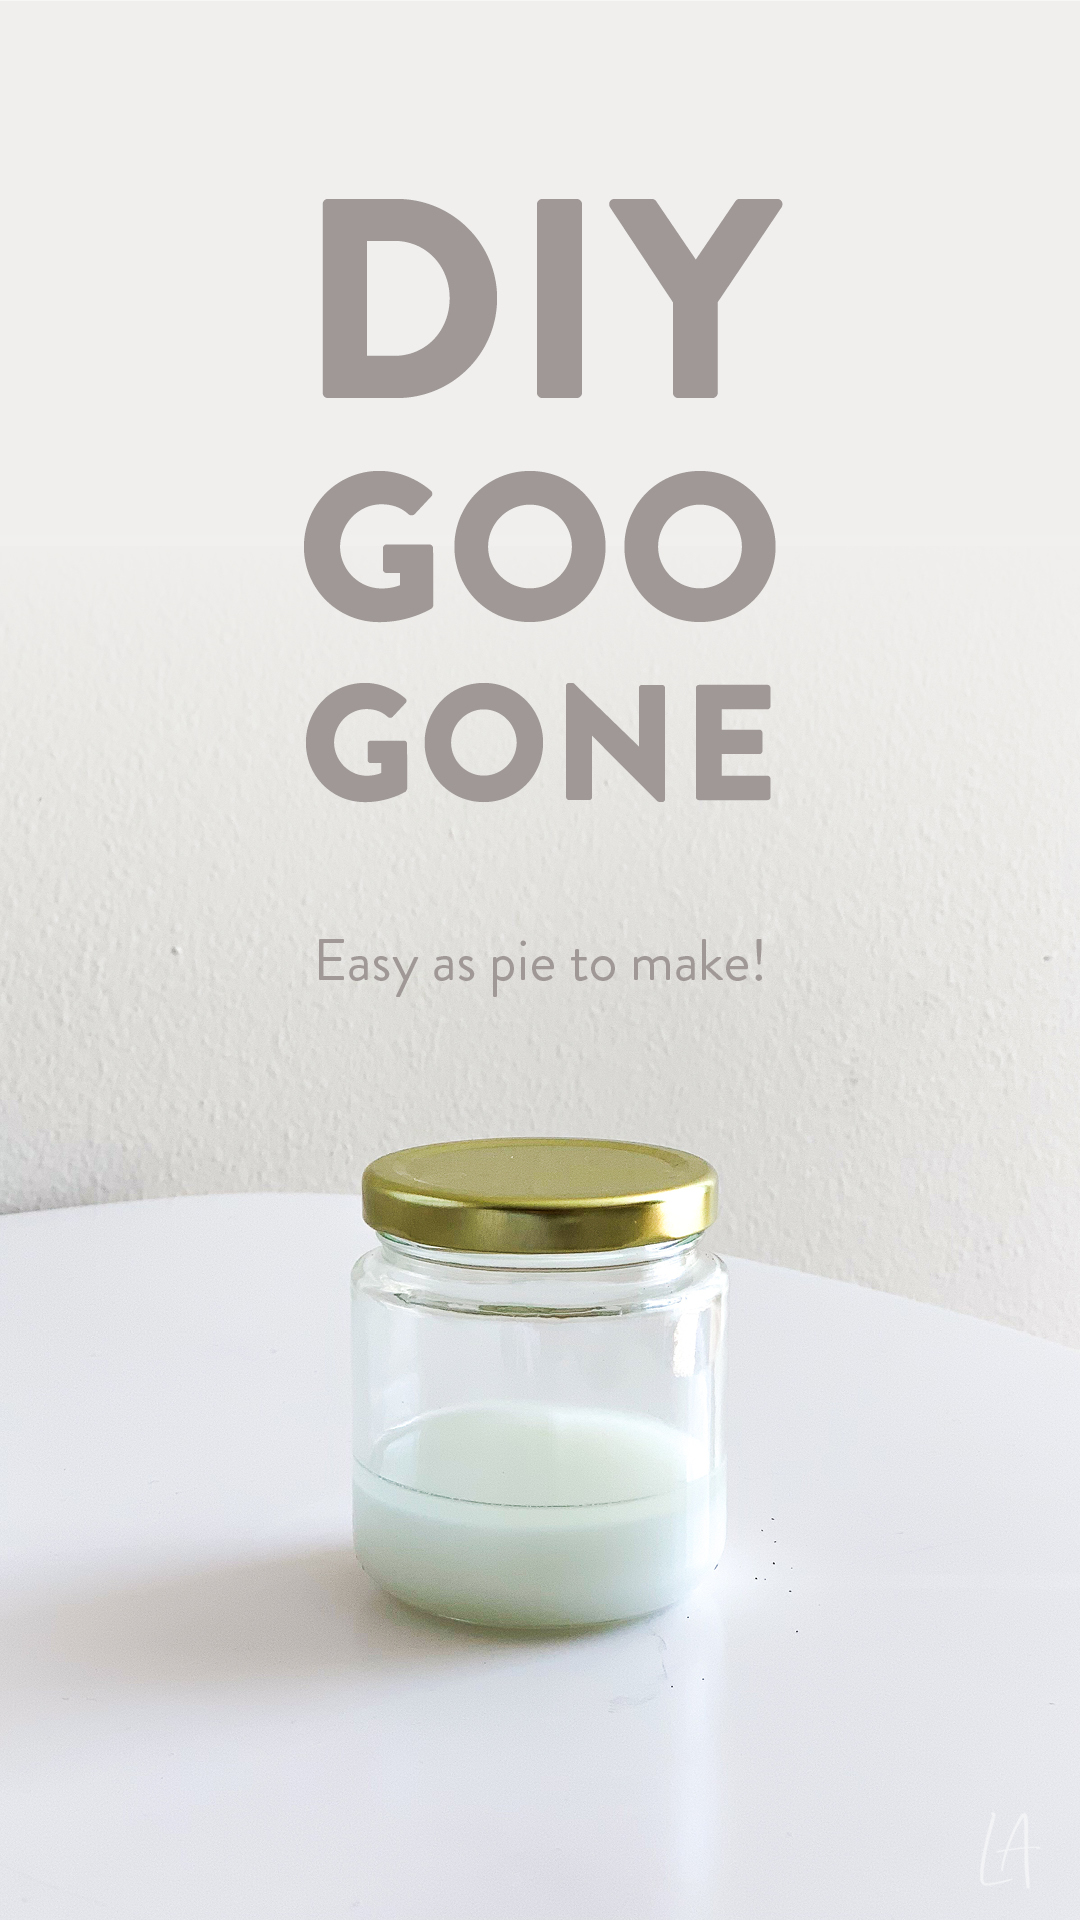 DIY Goo Gone recipe